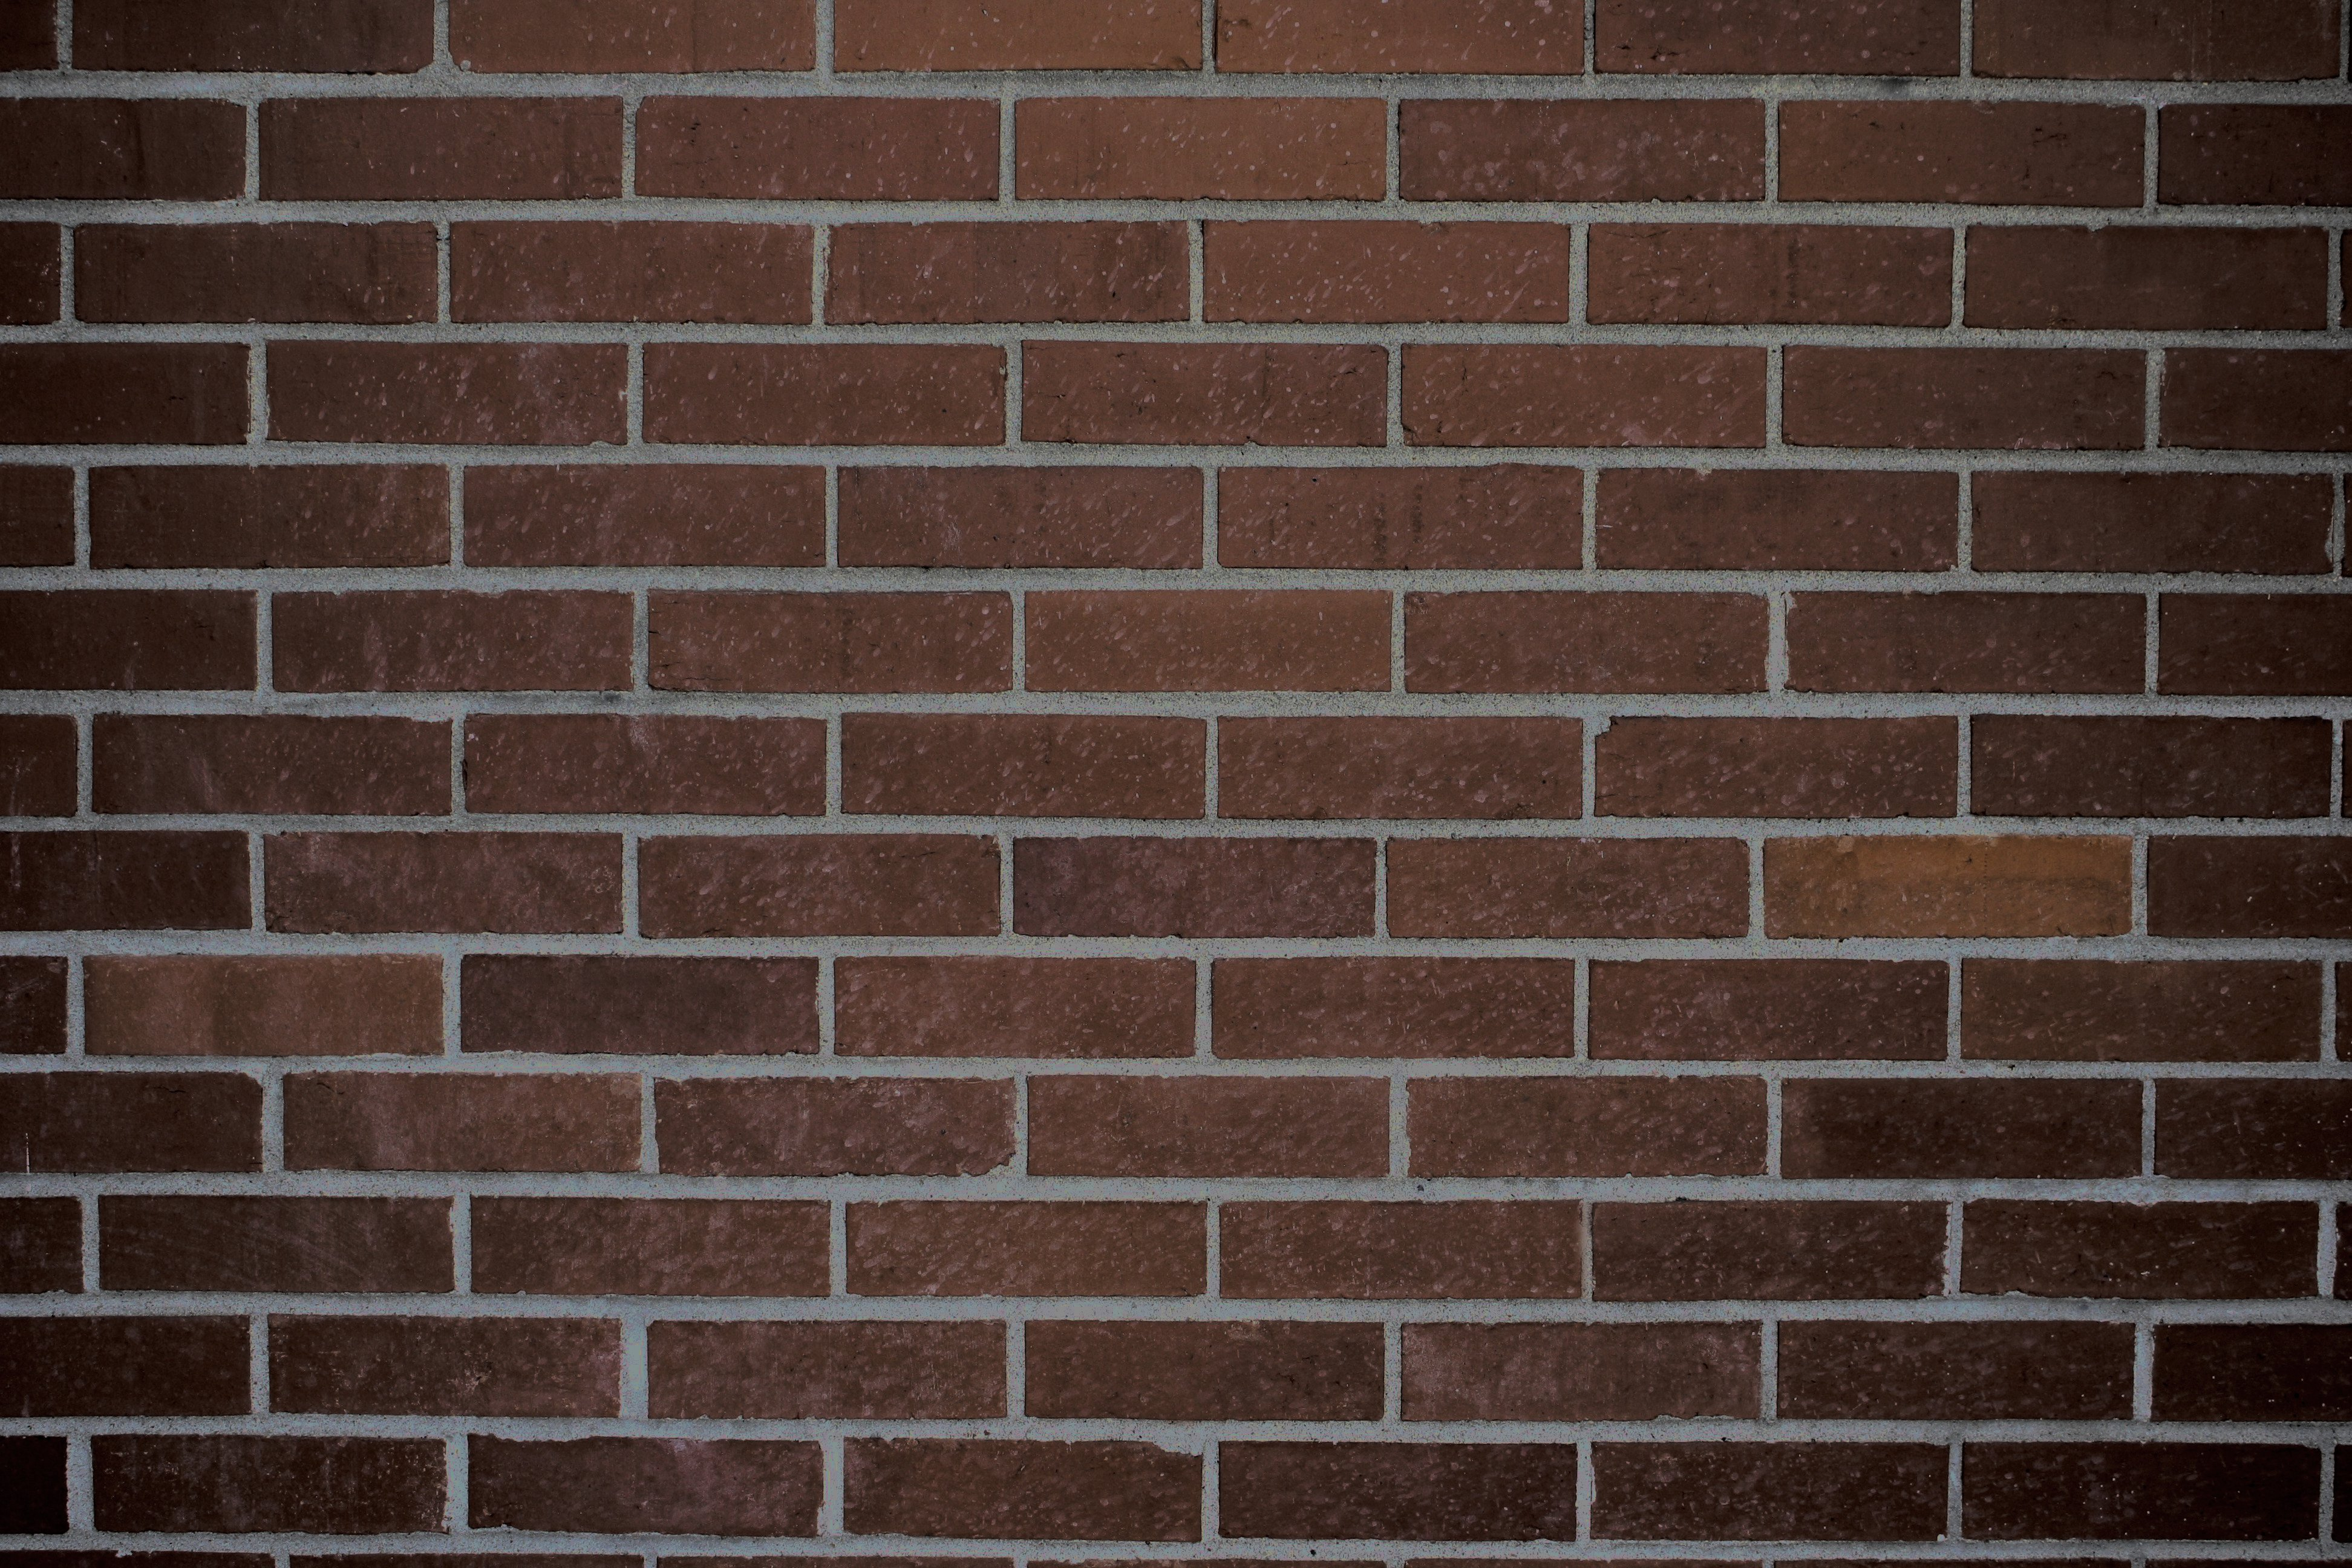 Dark Brown Brick Wall Texture Picture